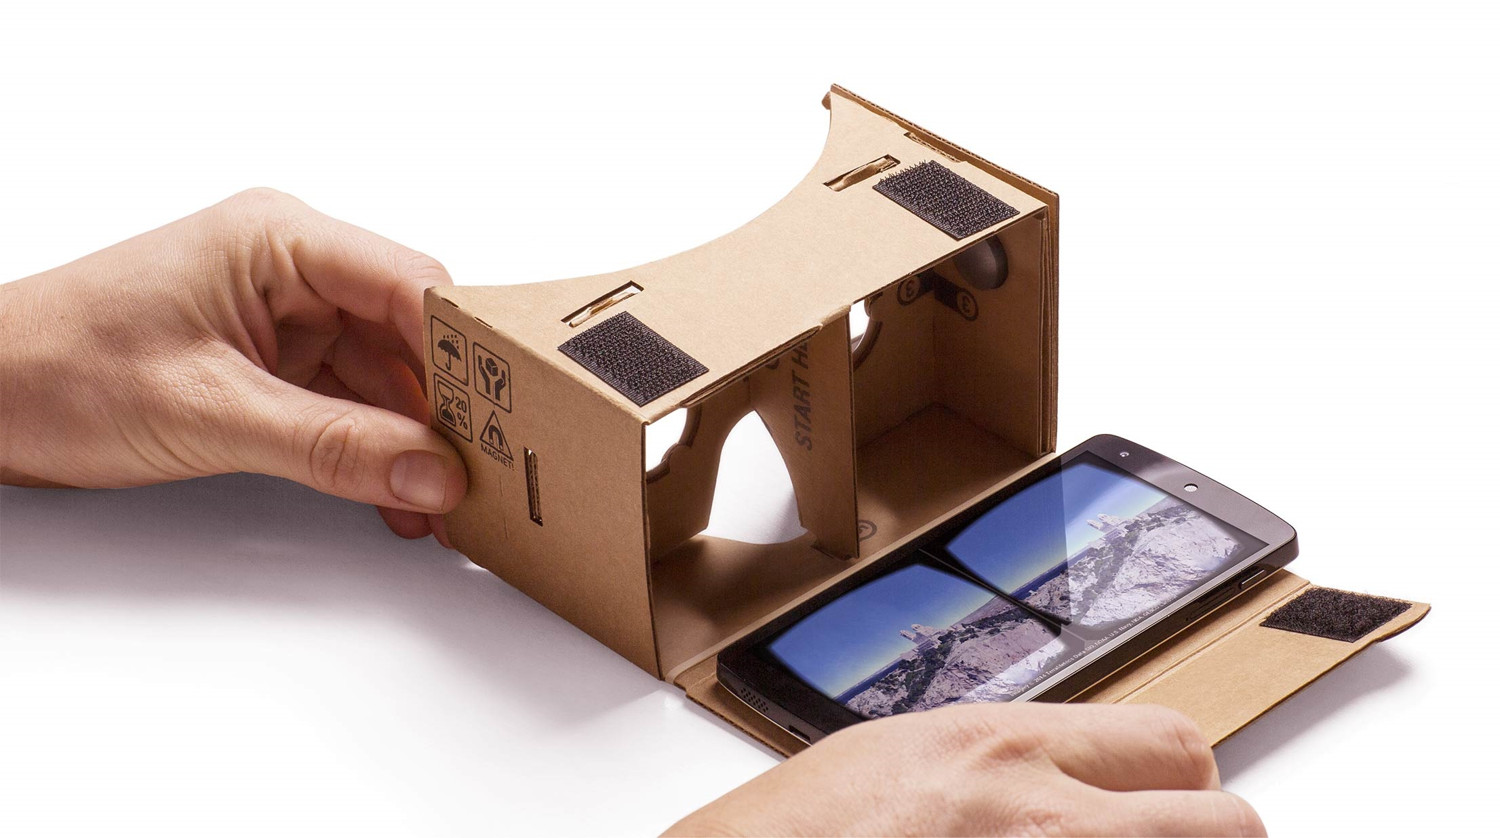 After full two years of its official launched, the Google Cardboard VR headset has finally been made available in the UK.